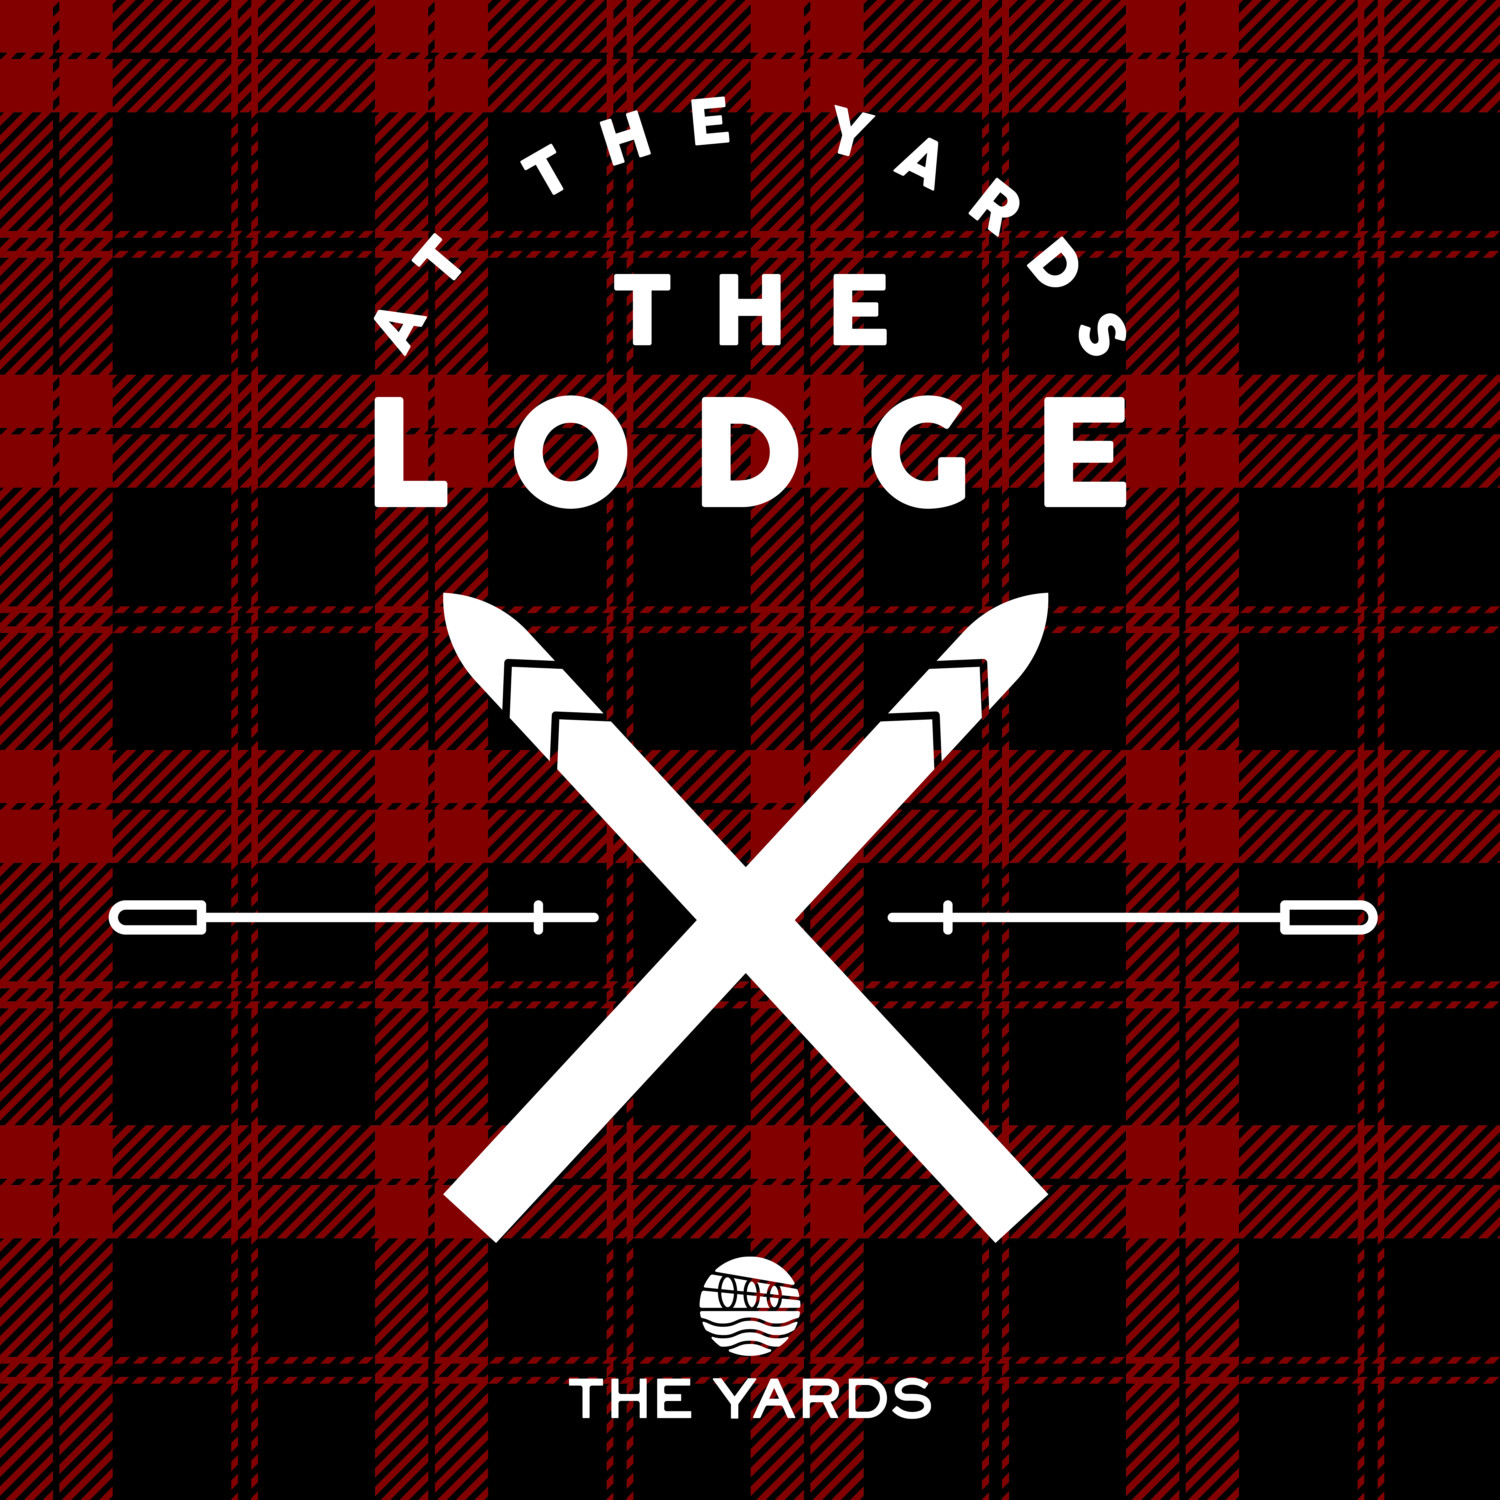 The Lodge at The Yards